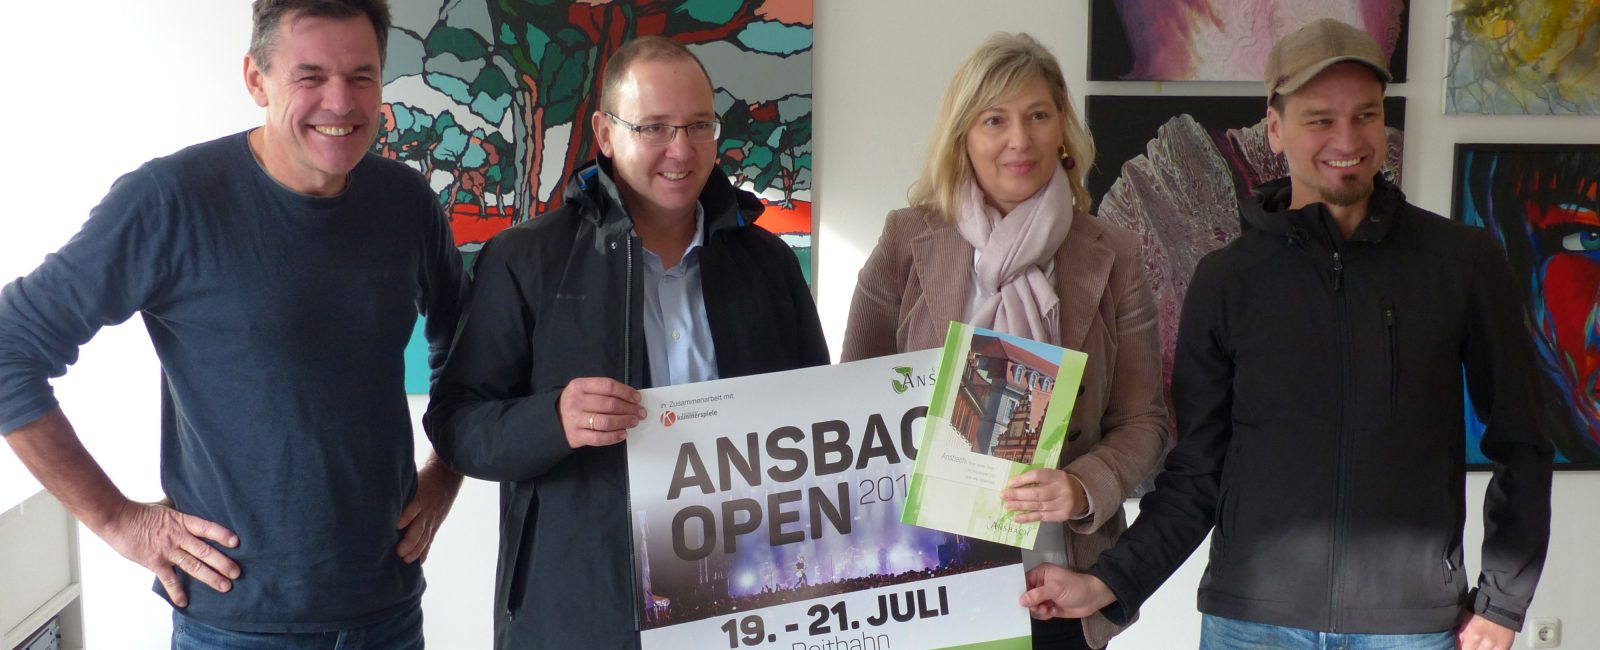 Ansbach Open PG 2019